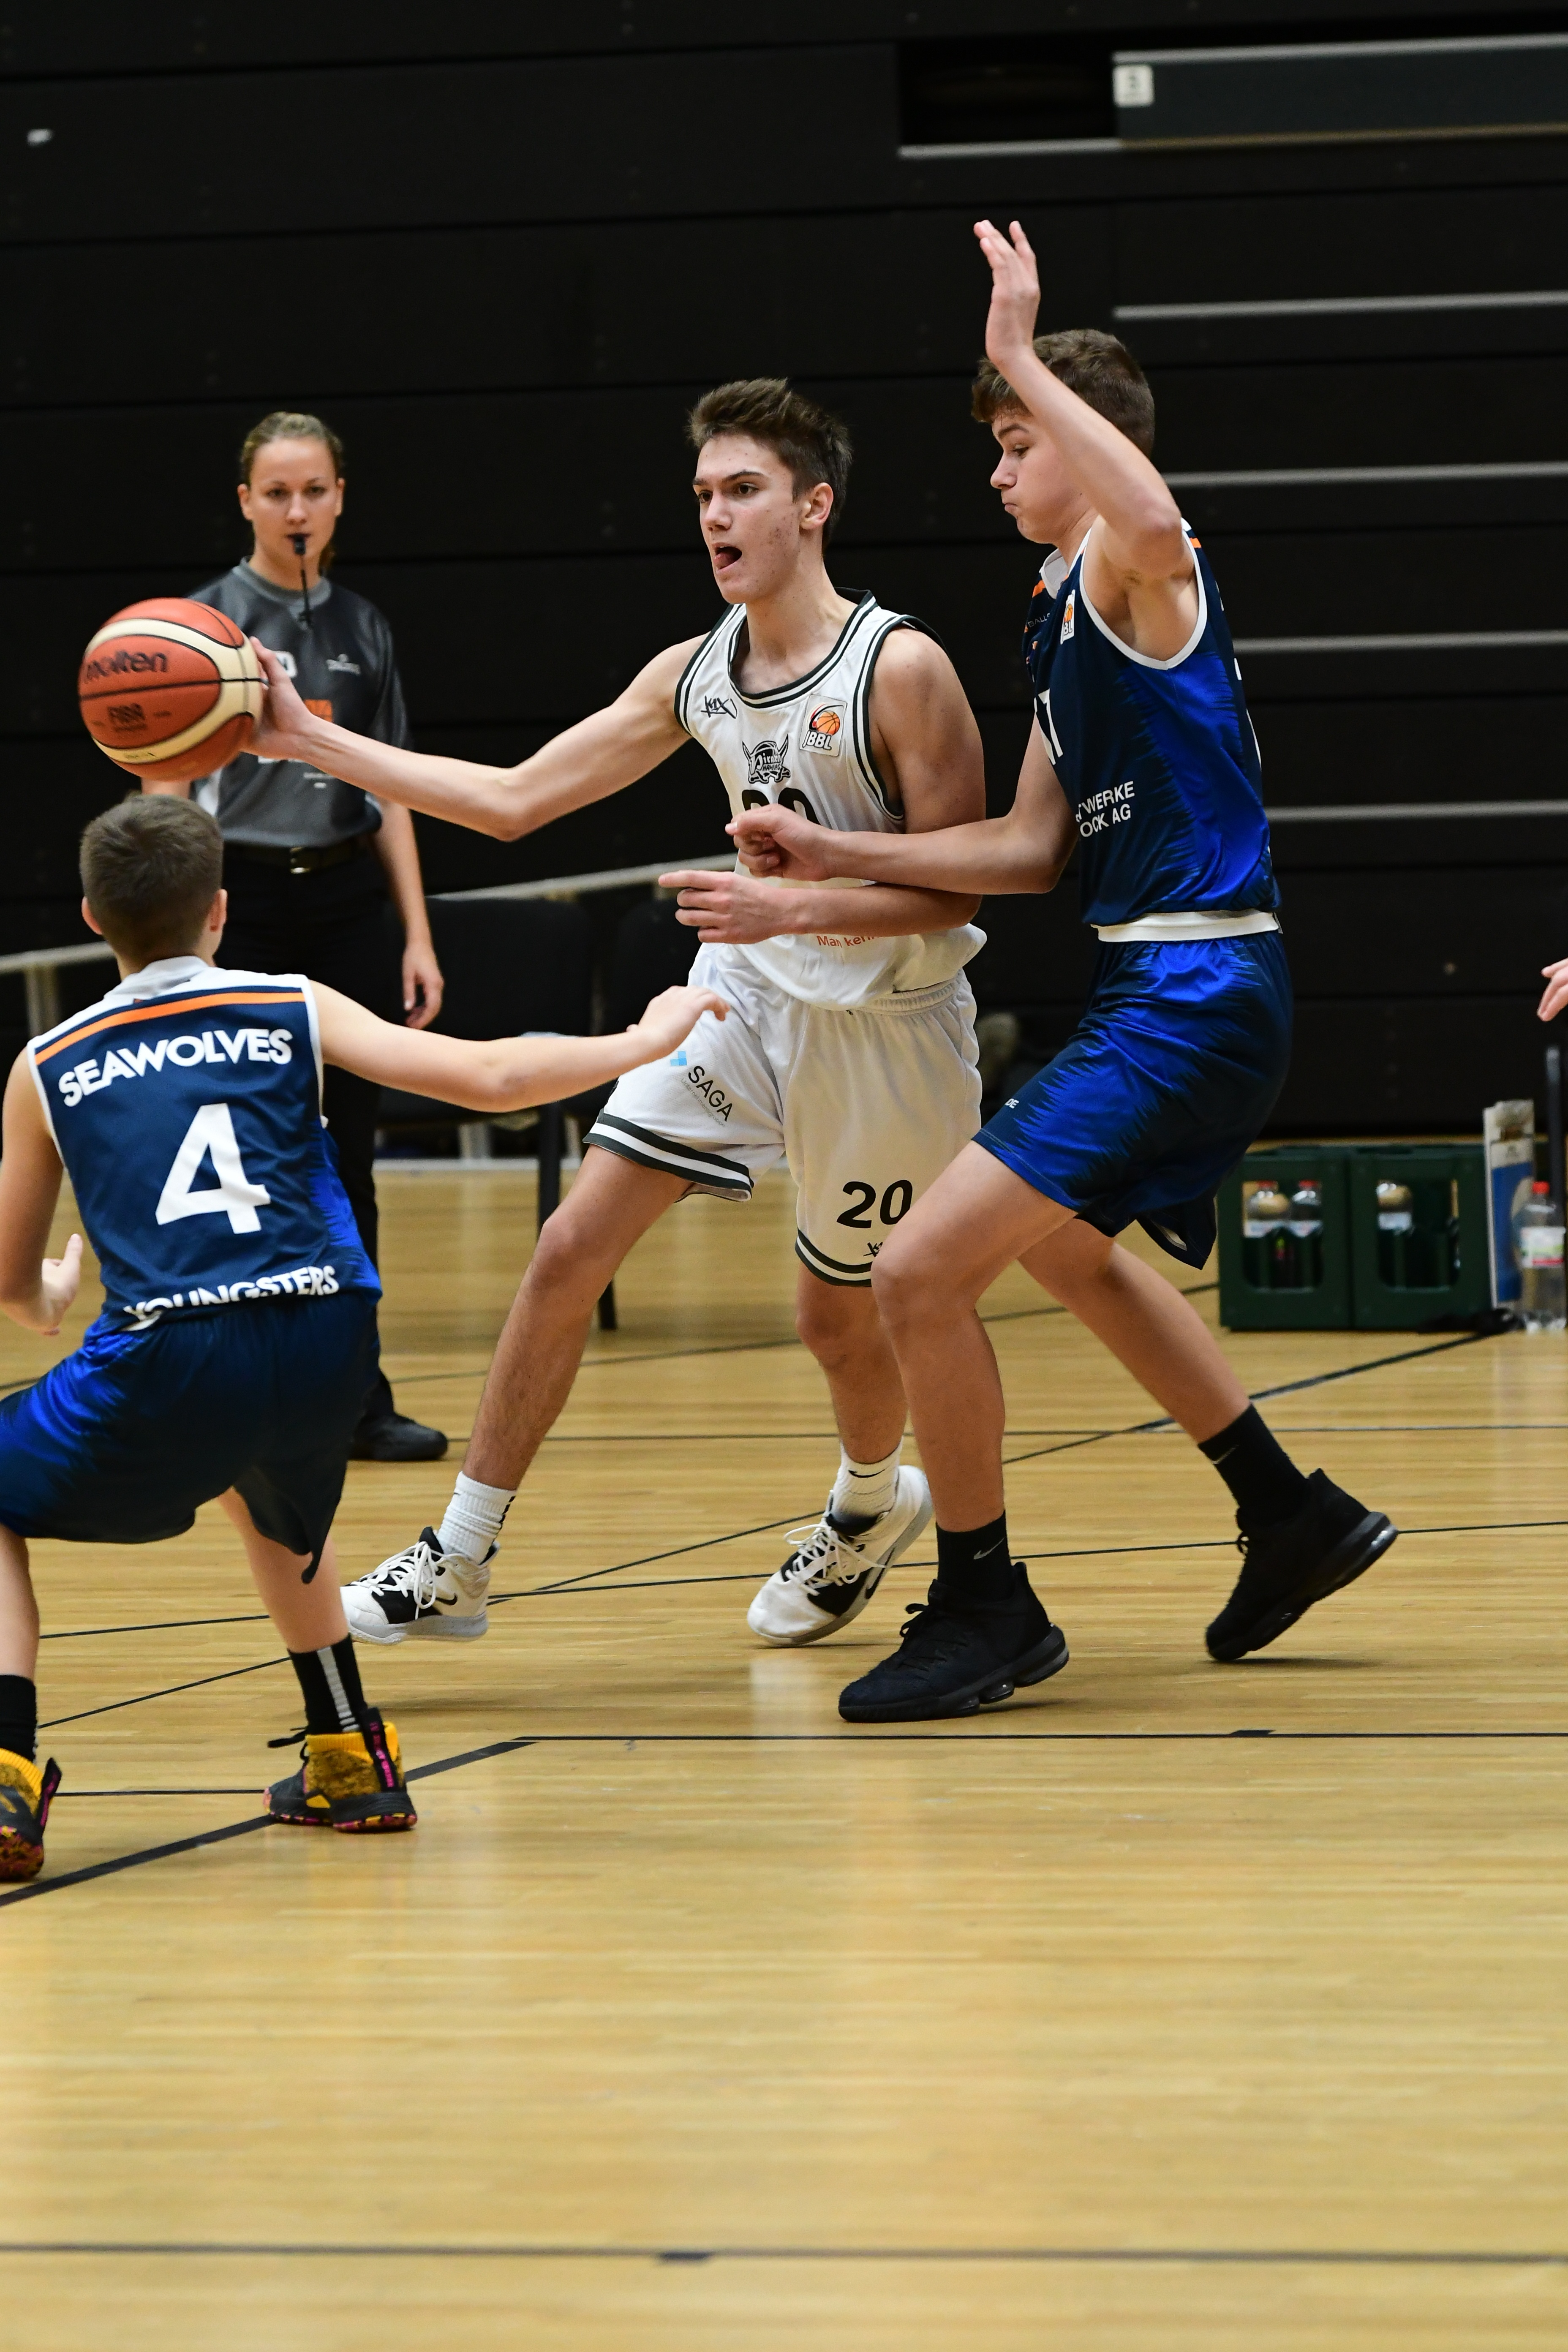 Foto-21-01.11.2019-Spieltag-6-JBBL-Hamburg-Towers-gegen-Rostock-Seawolves-Youngsters